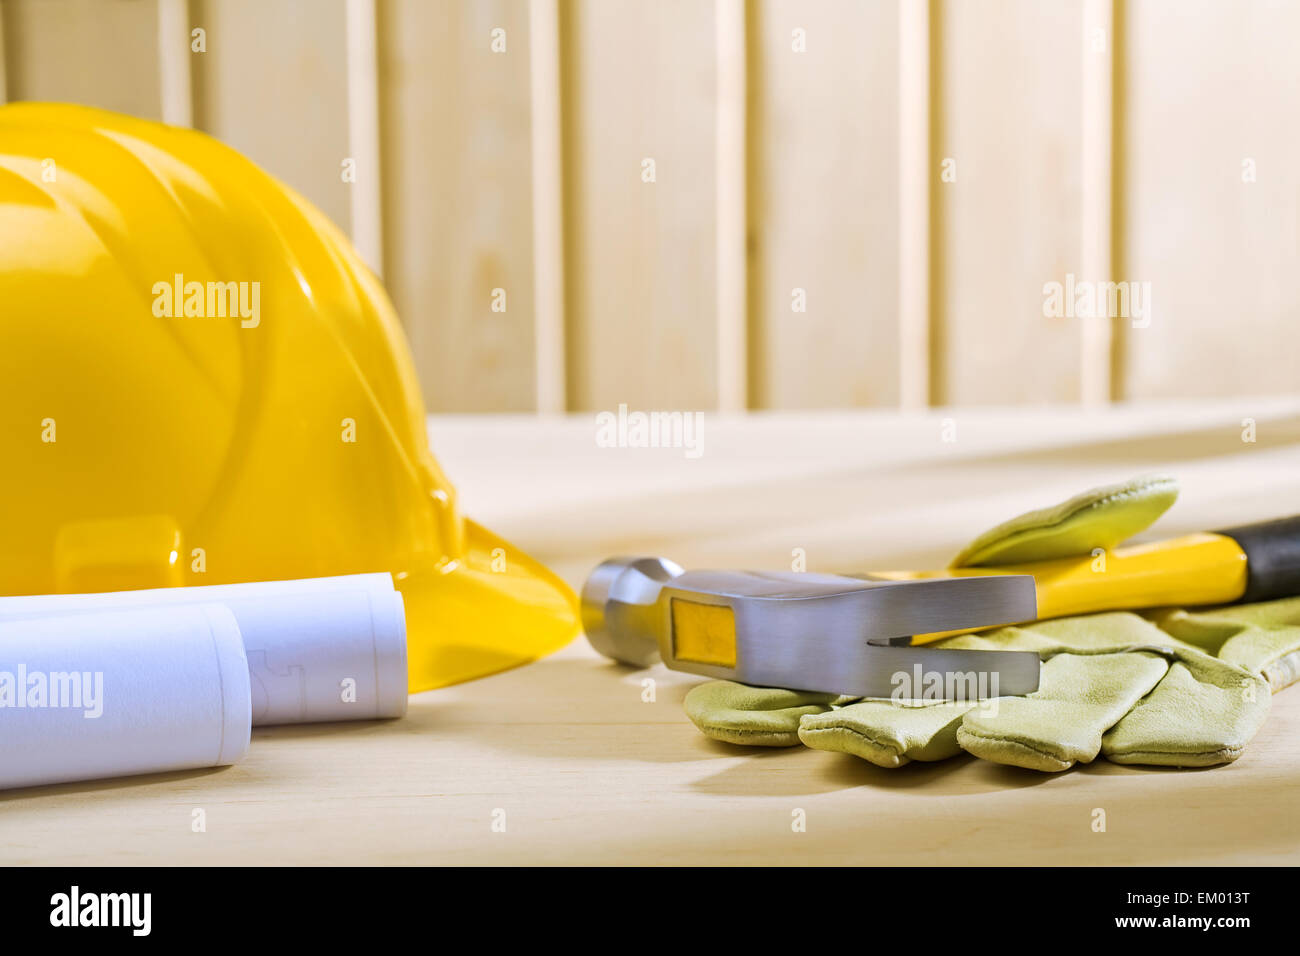 claw hammer on glove and hellmet with blueprints - Stock Image